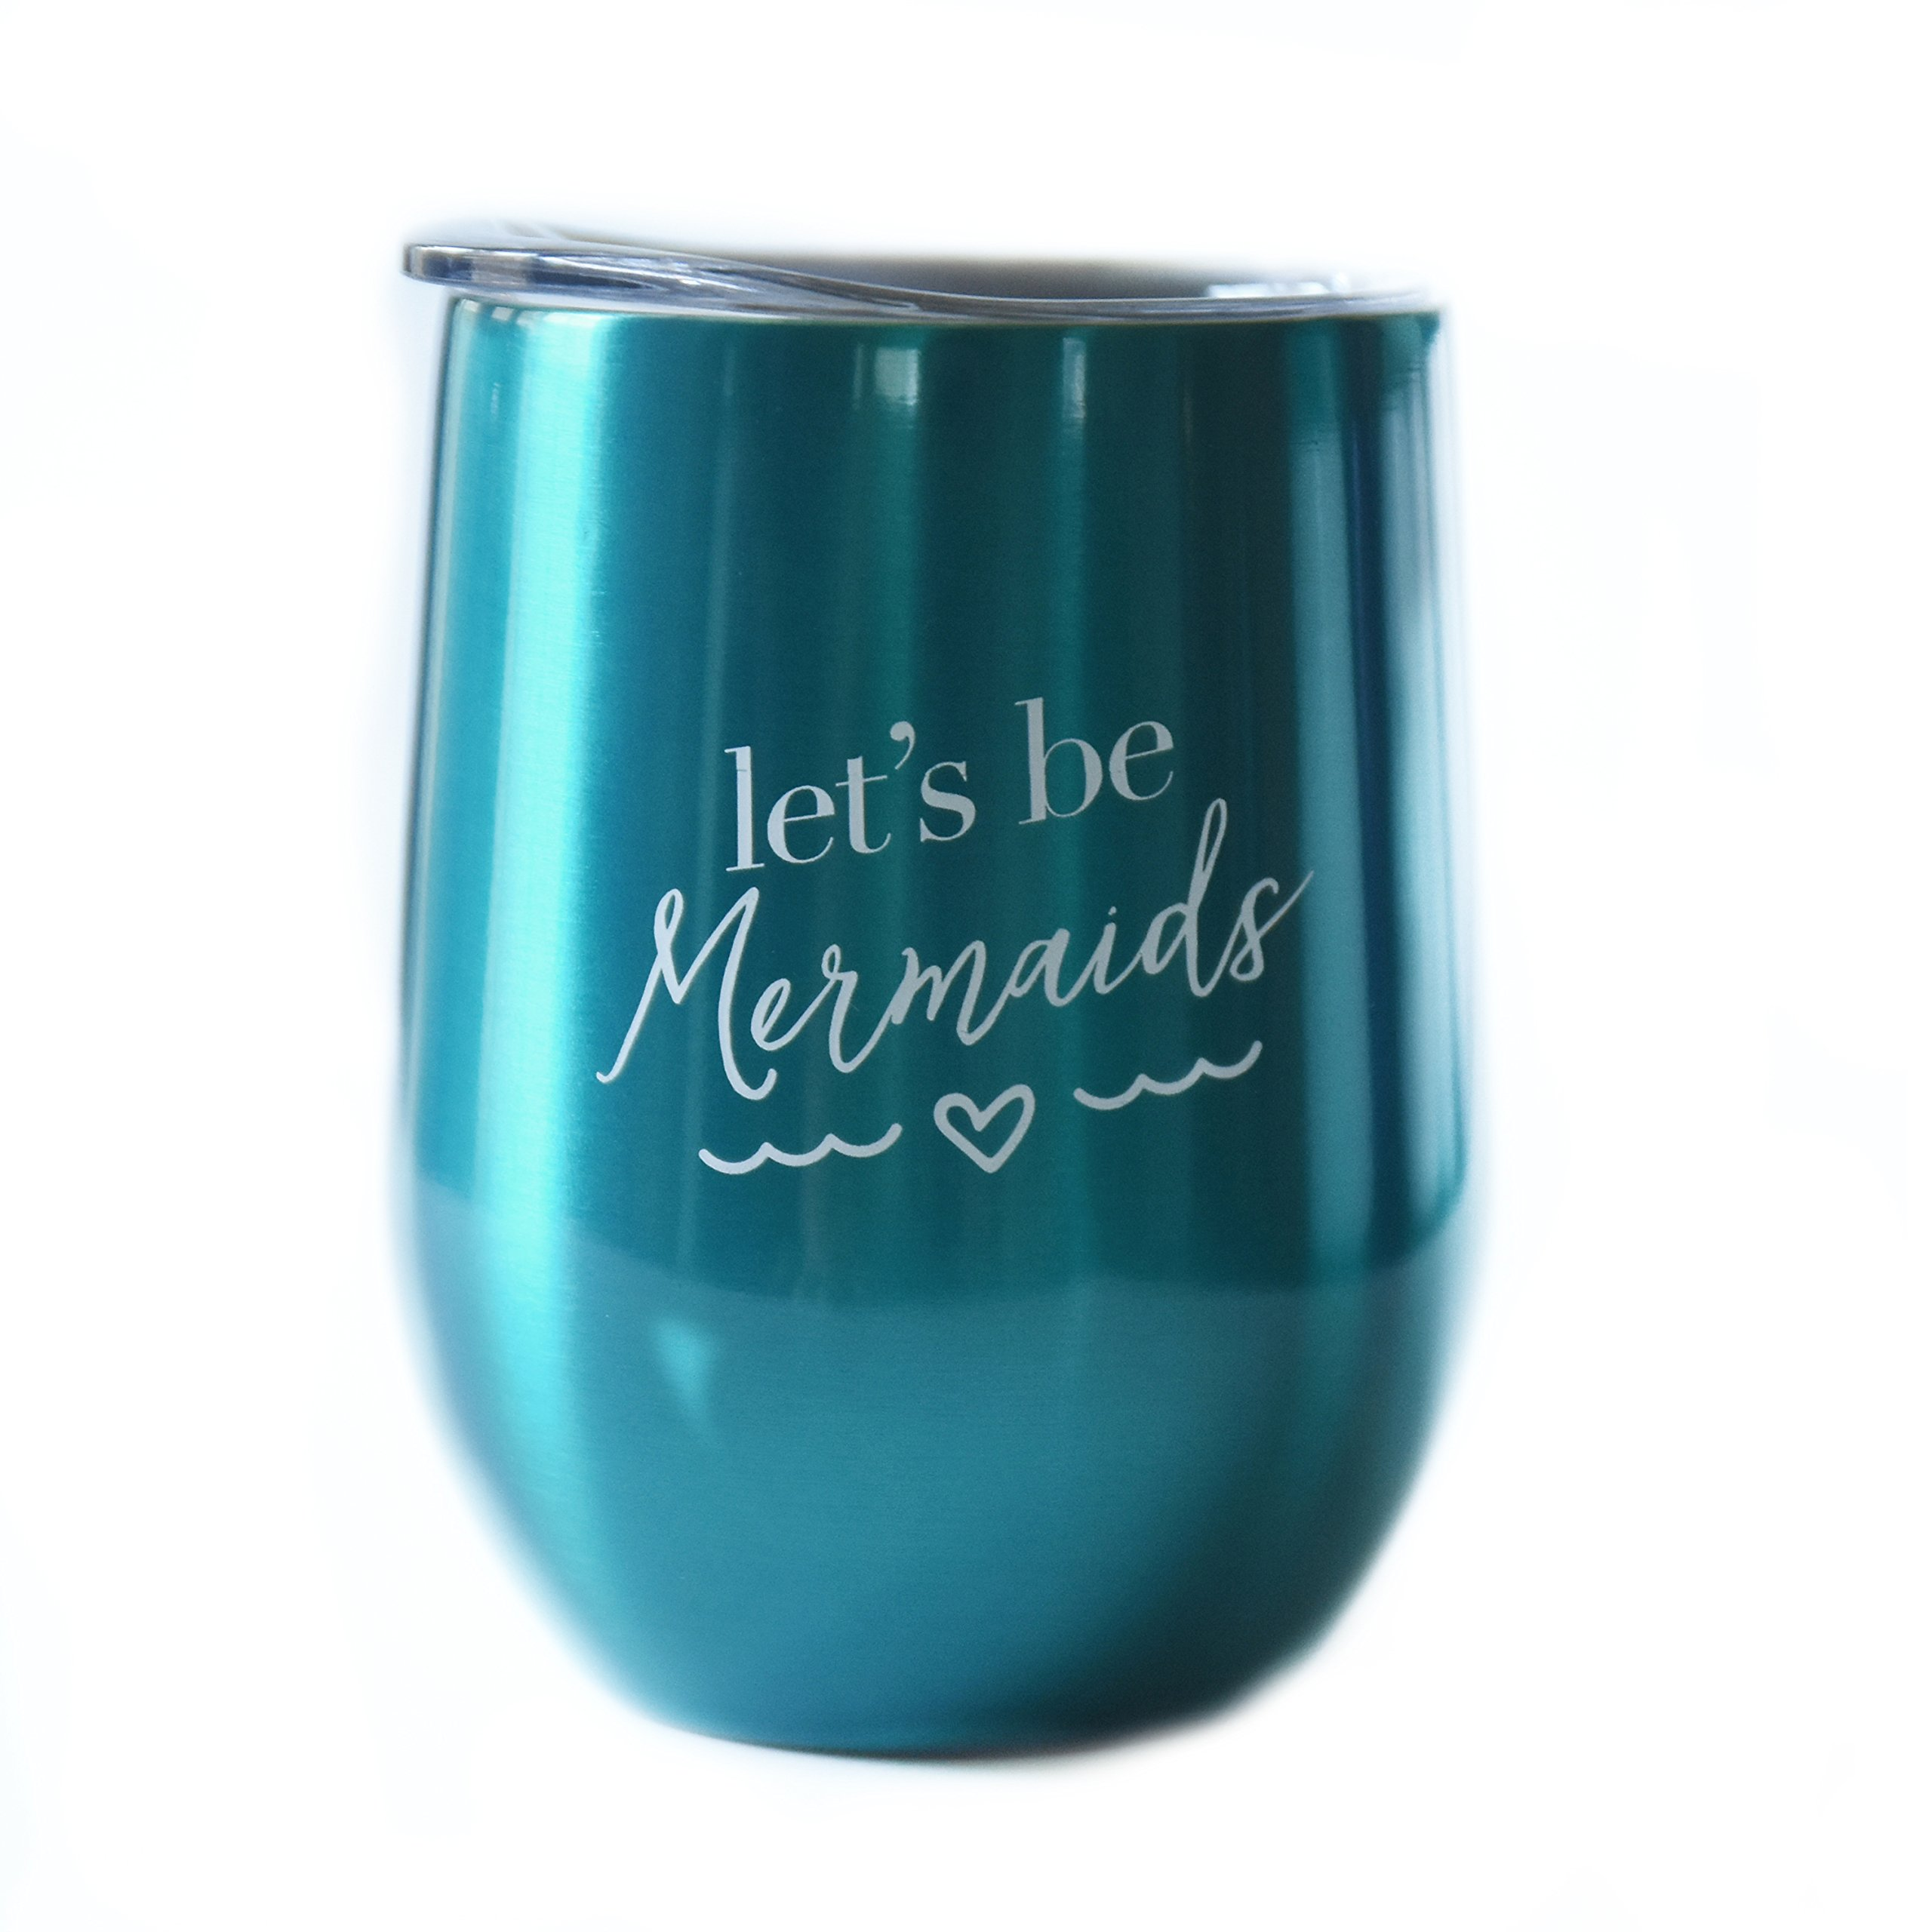 Let's Be Mermaids - 10 oz Stainless Steel Stemless Wine Glass Tumbler with Lid - Wine Tumbler Sippy Cup for Adults - Mermaid Lover Gift